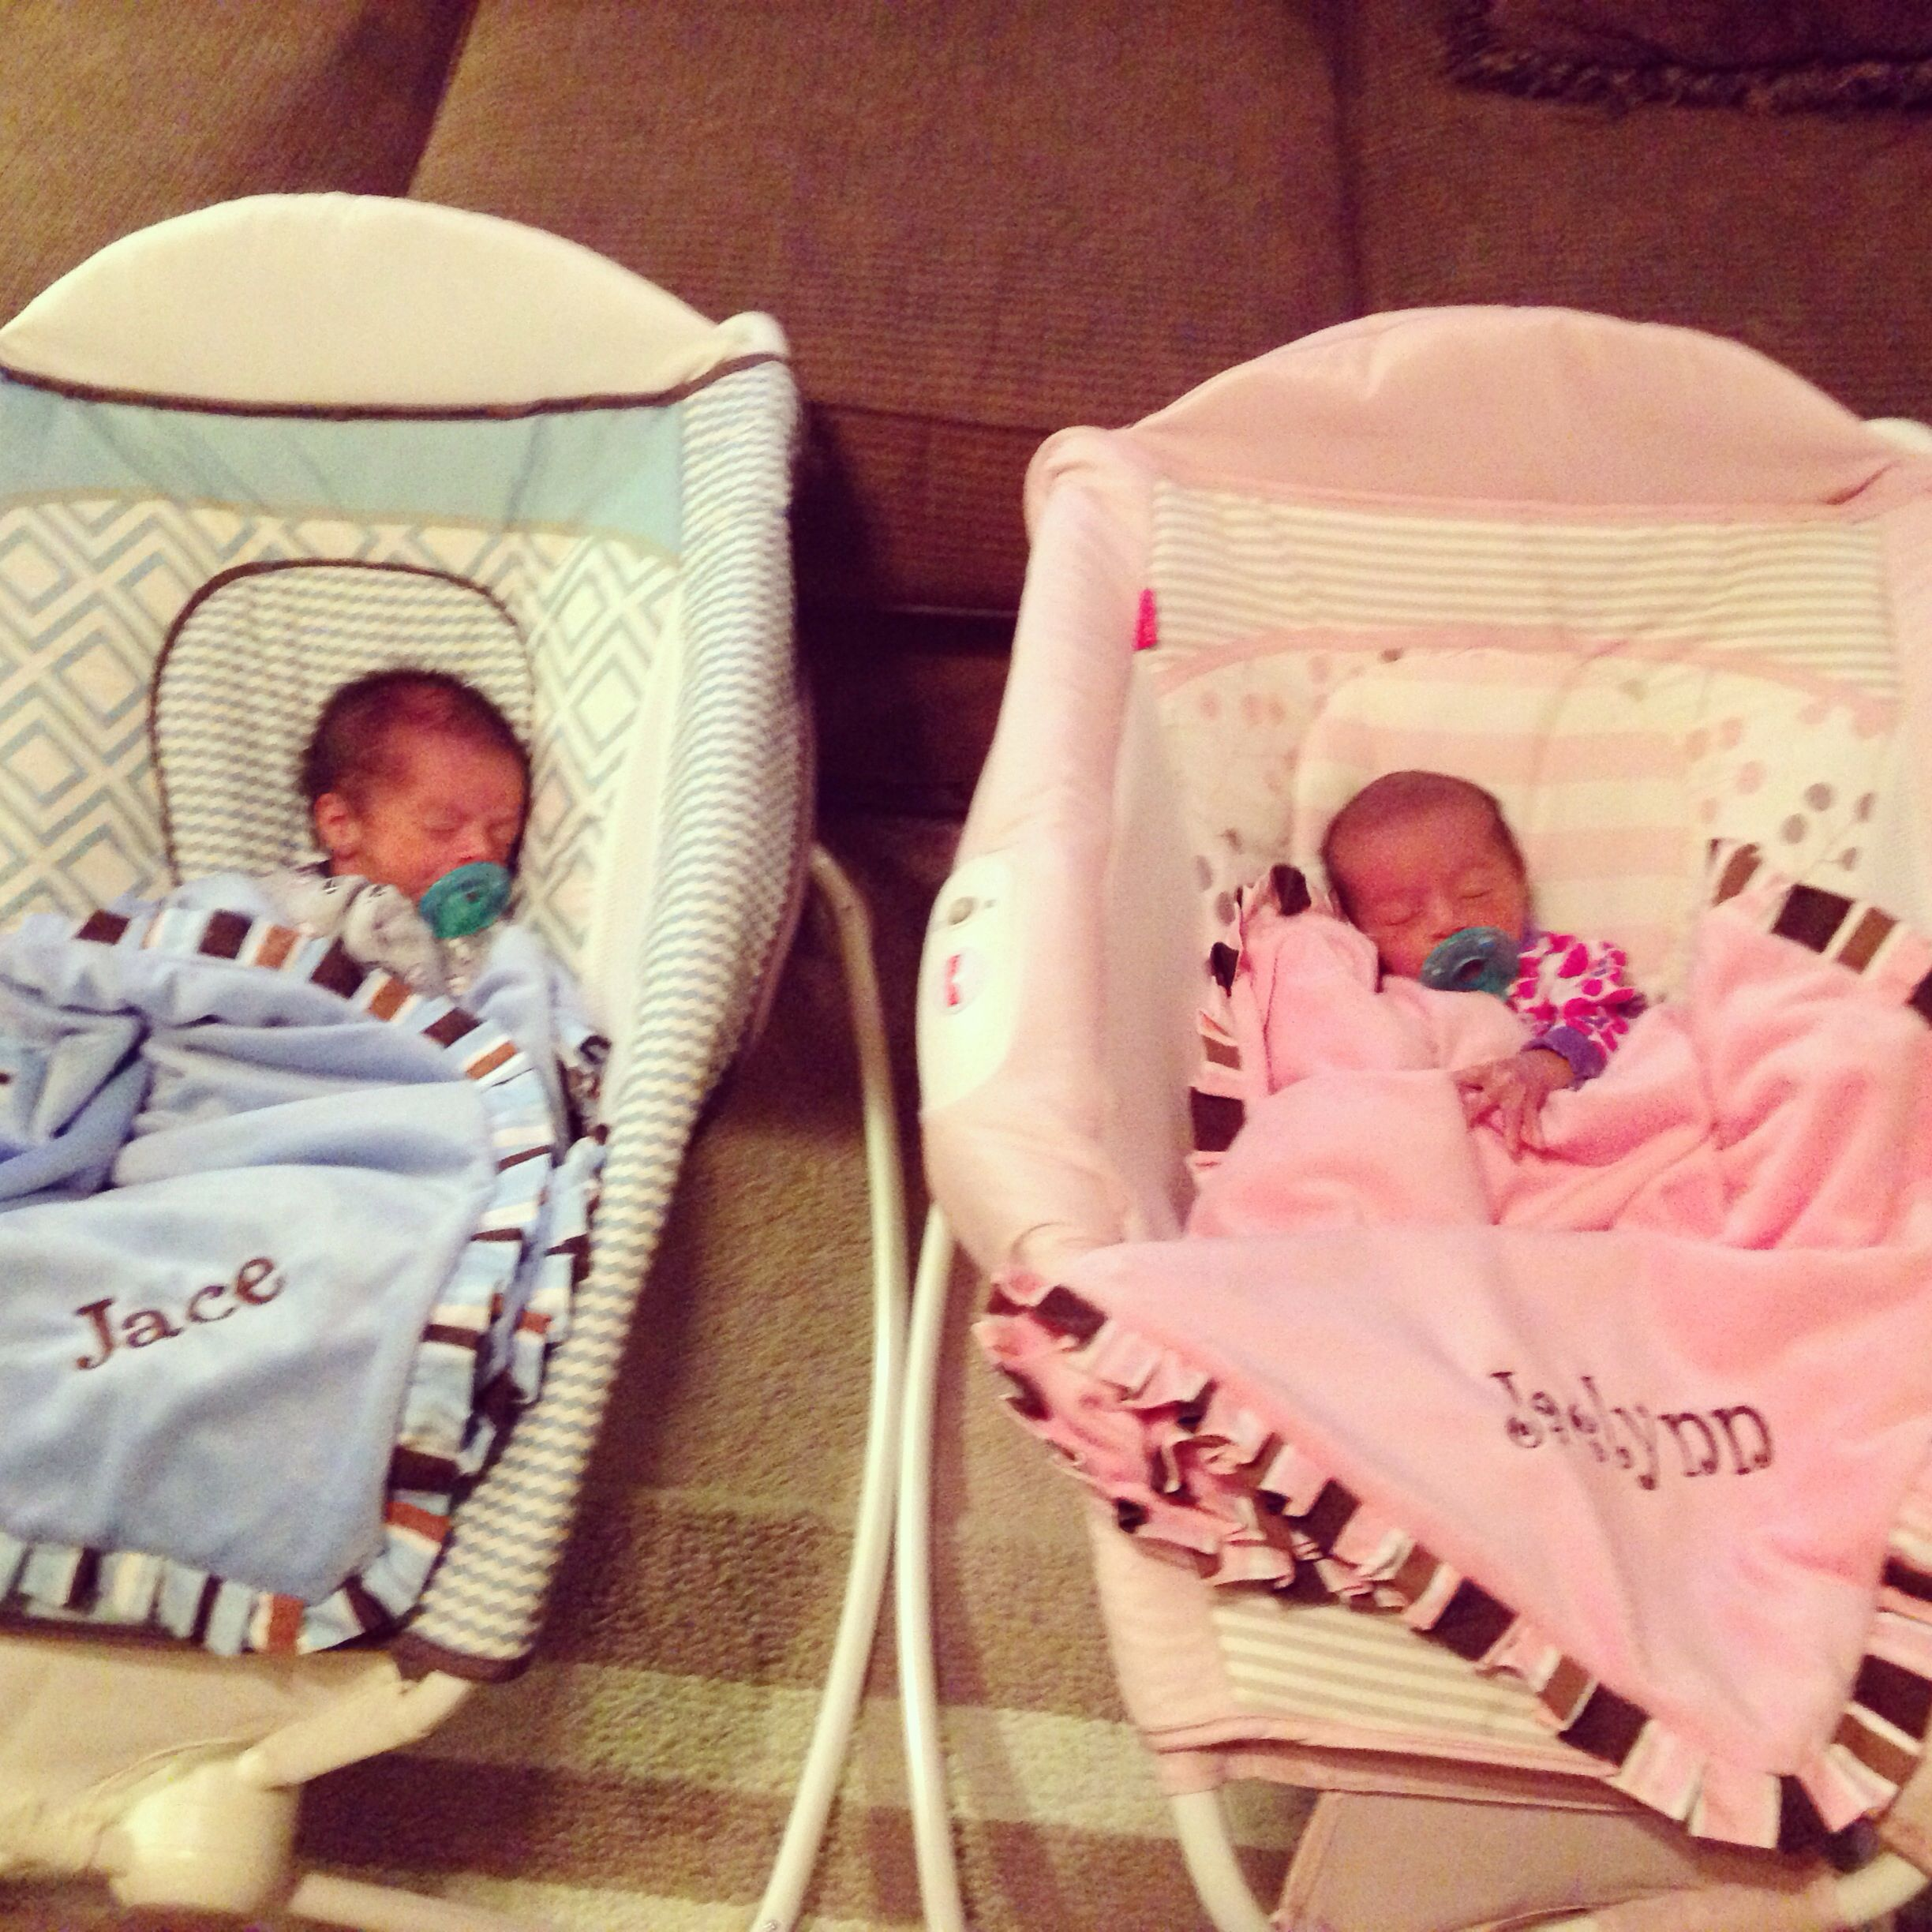 First day home from the hospital with the twins.